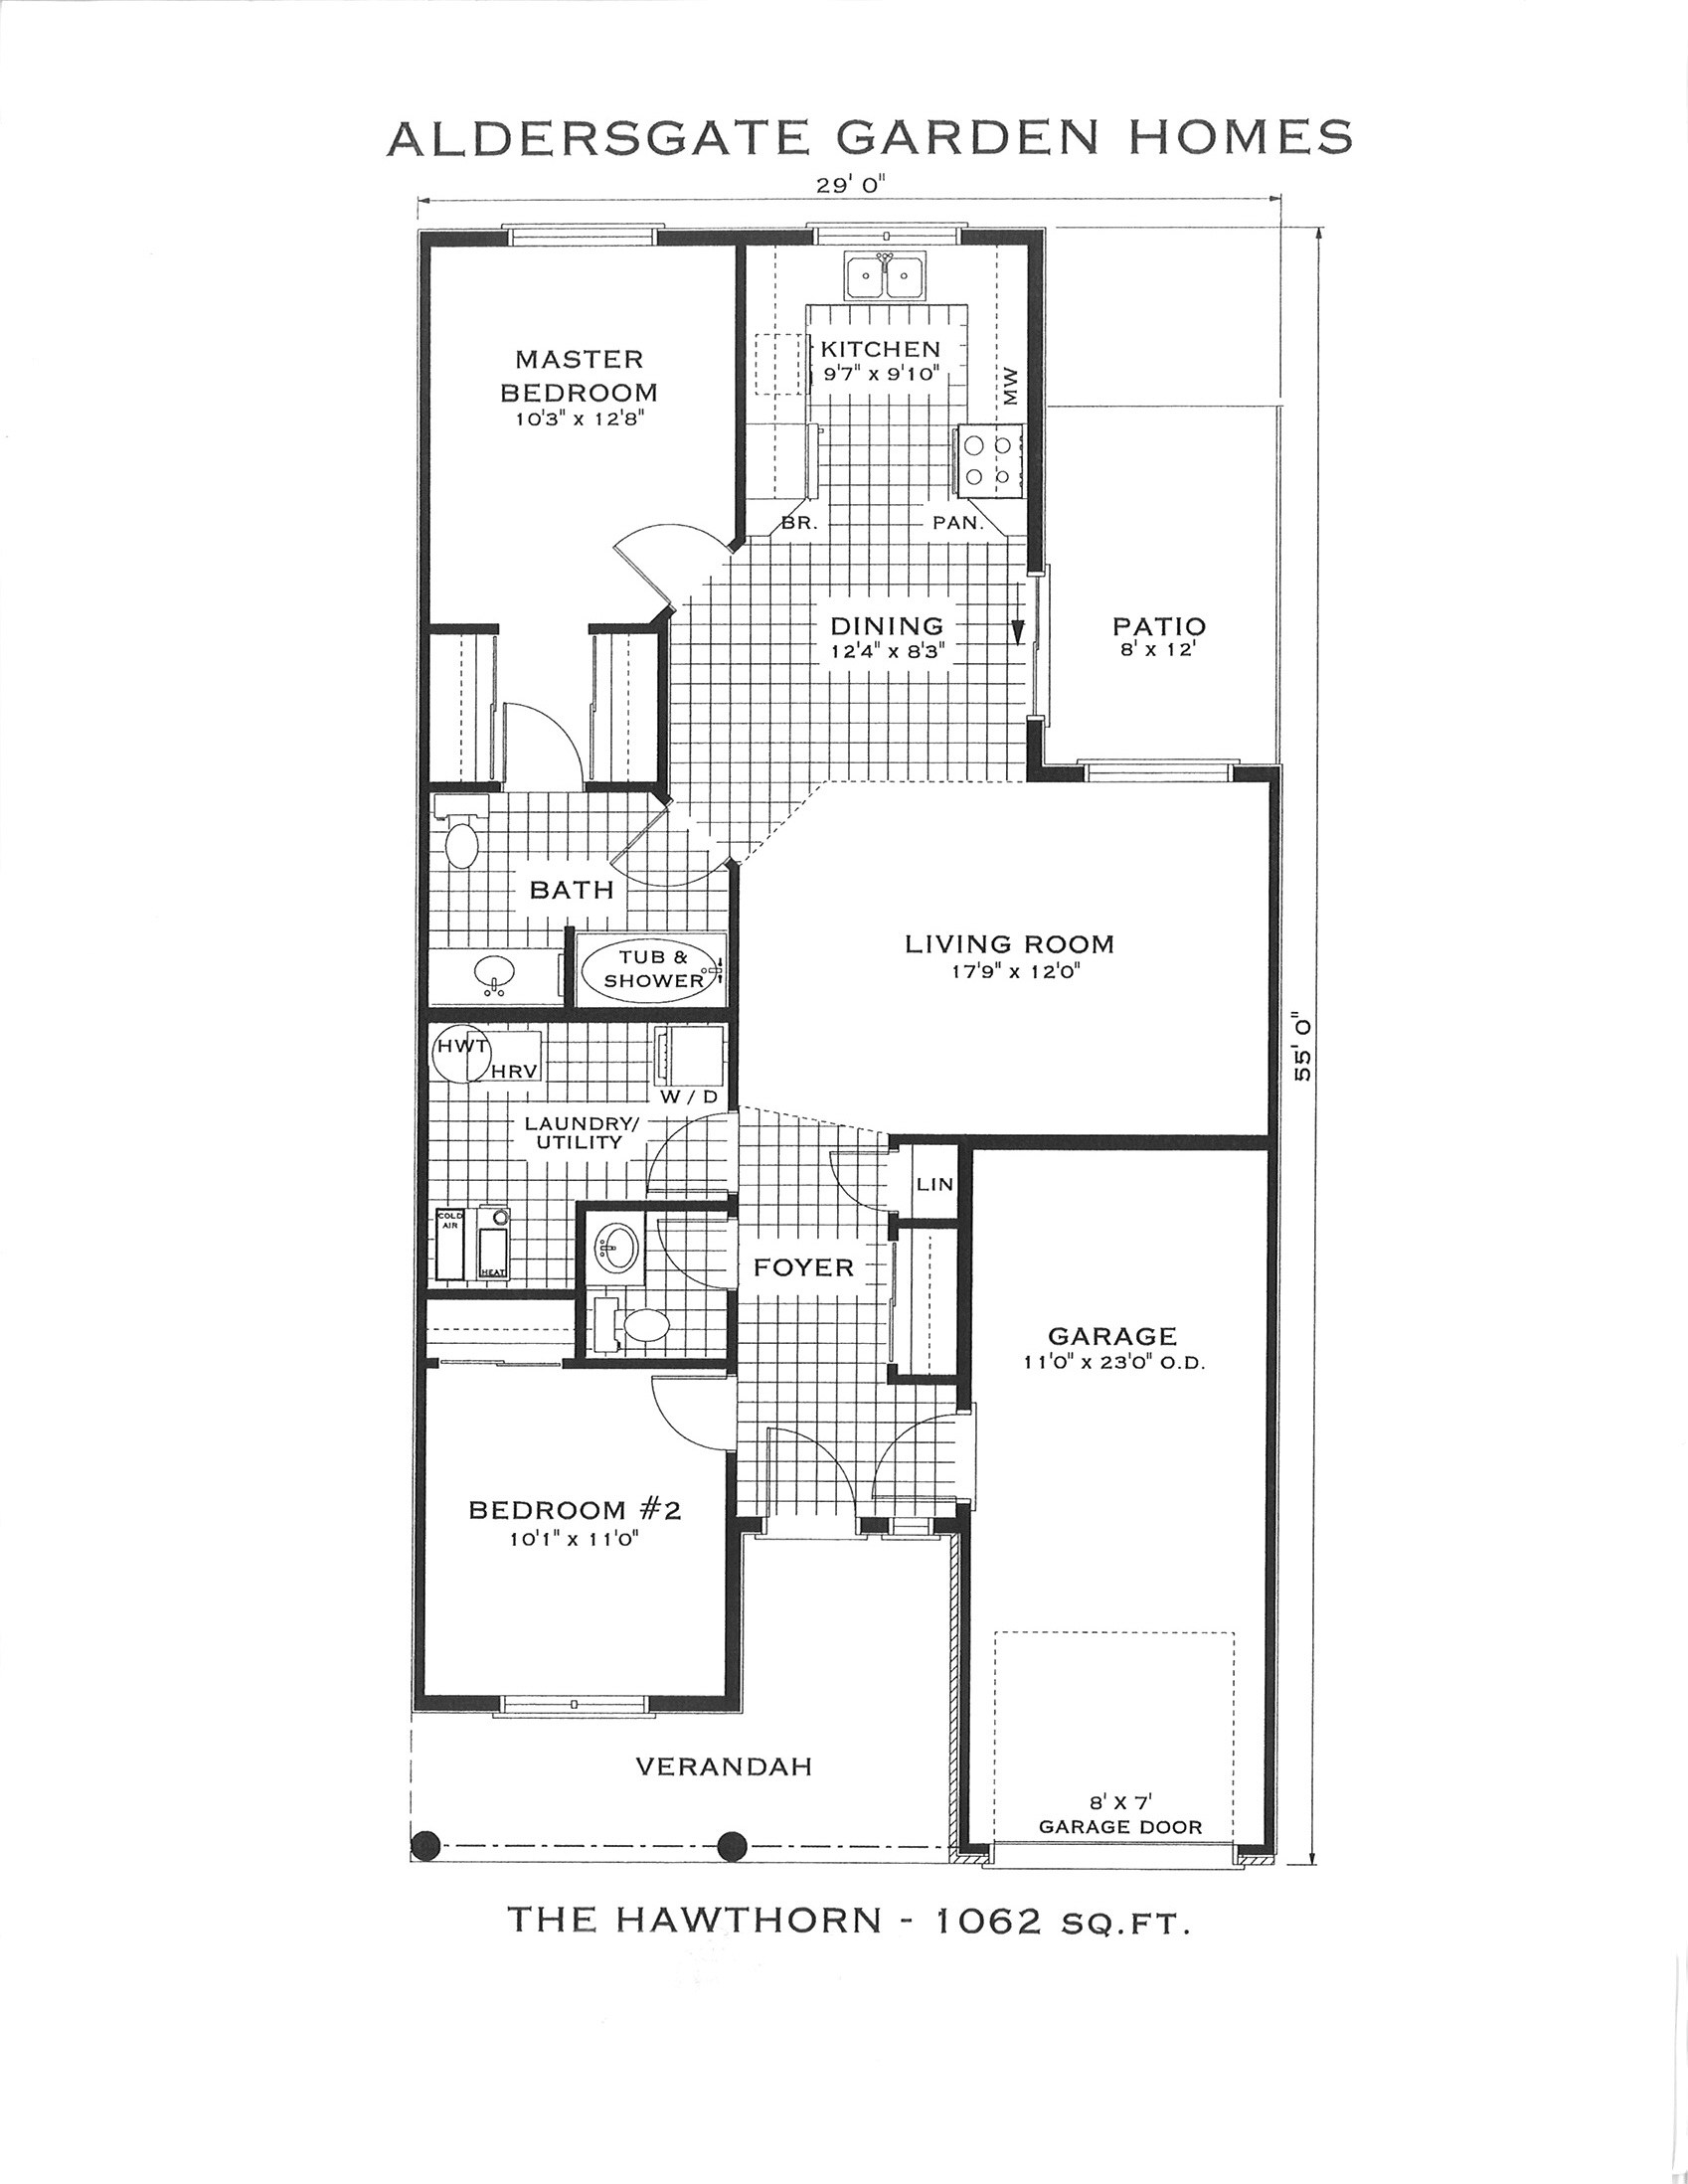 Hawthorn%202 Top Result 50 New 7 Bedroom House Plans Gallery 2017 Hgd6